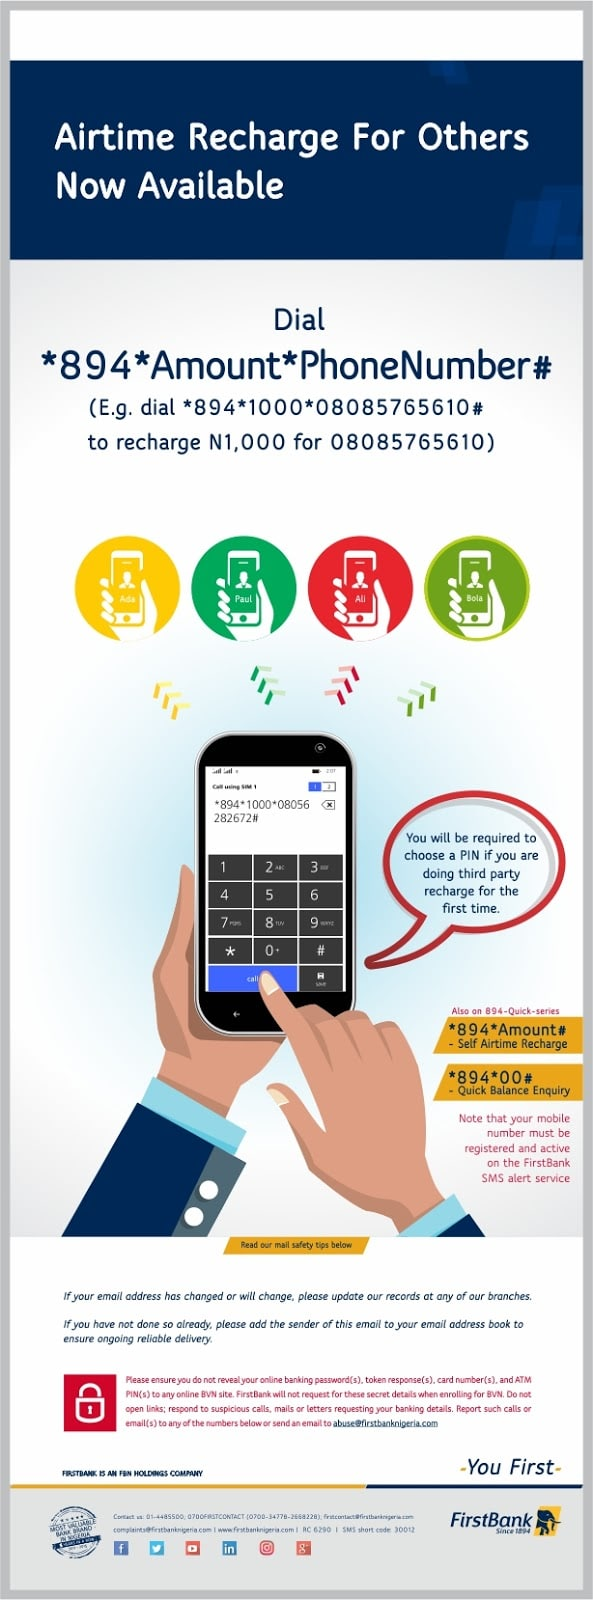 buy airtime on first bank